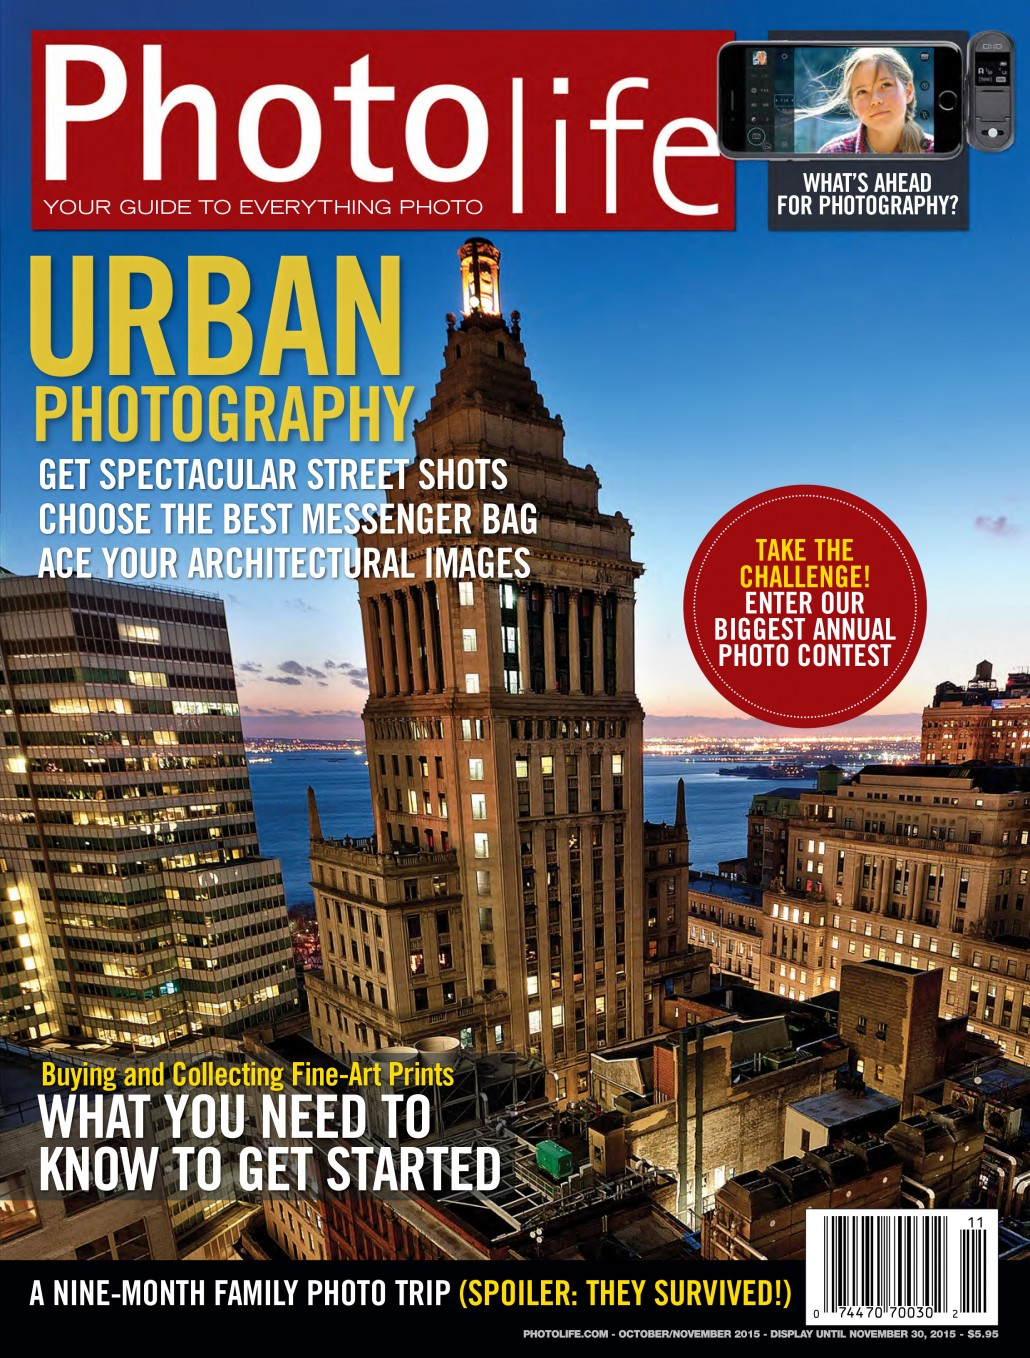 Just Off The Press: Cover for PhotoLife Magazine Oct/Nov 2015